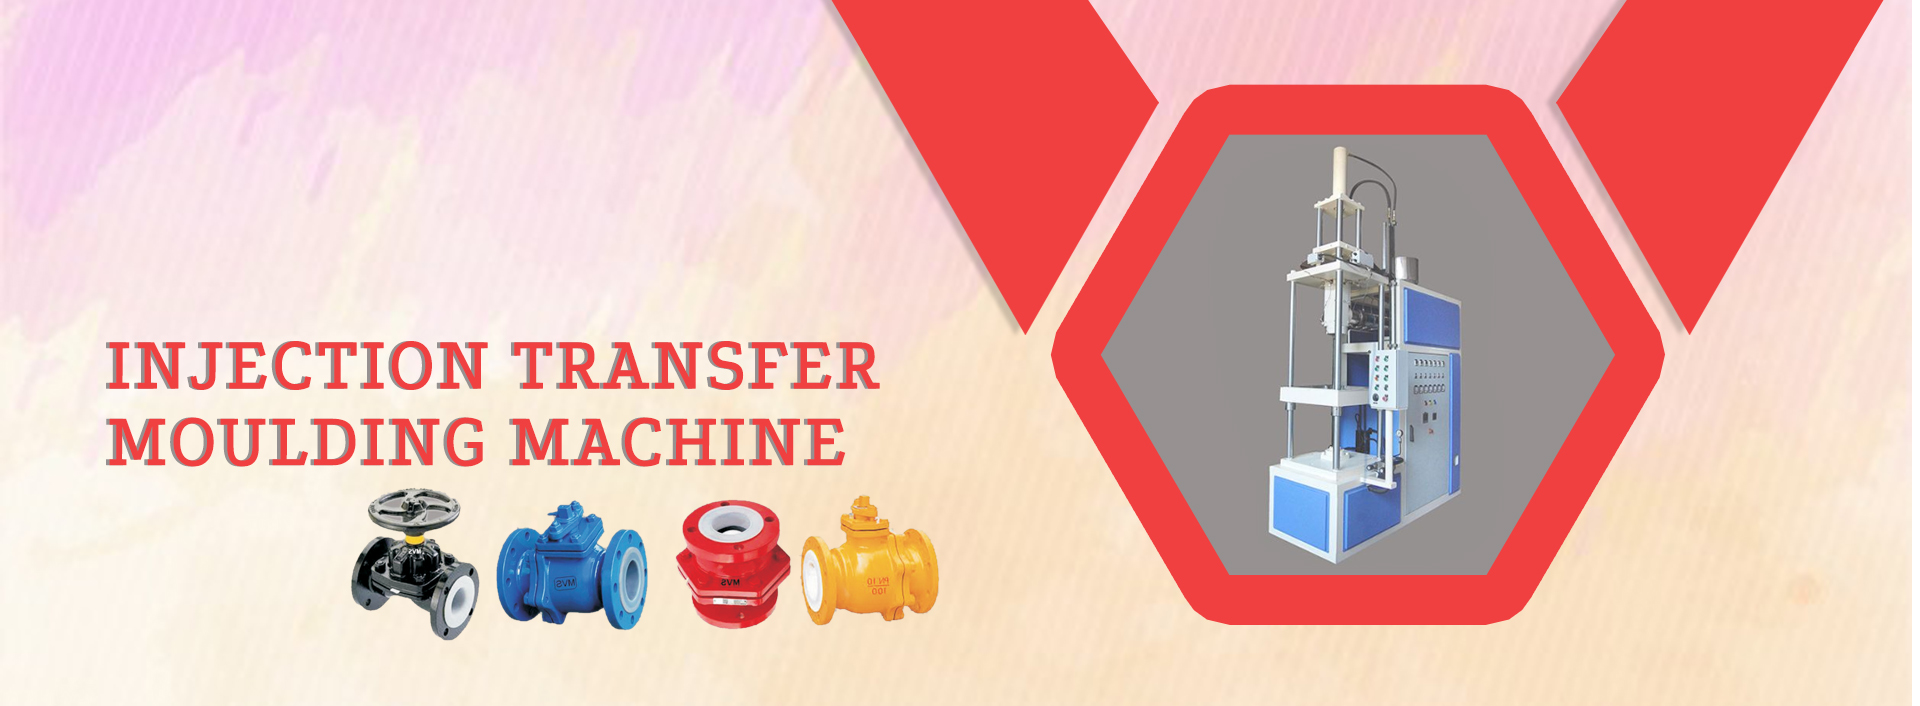 Shakti Industries is a renowned manufacturer and supplier of Injection Transfer Moulding Machine.